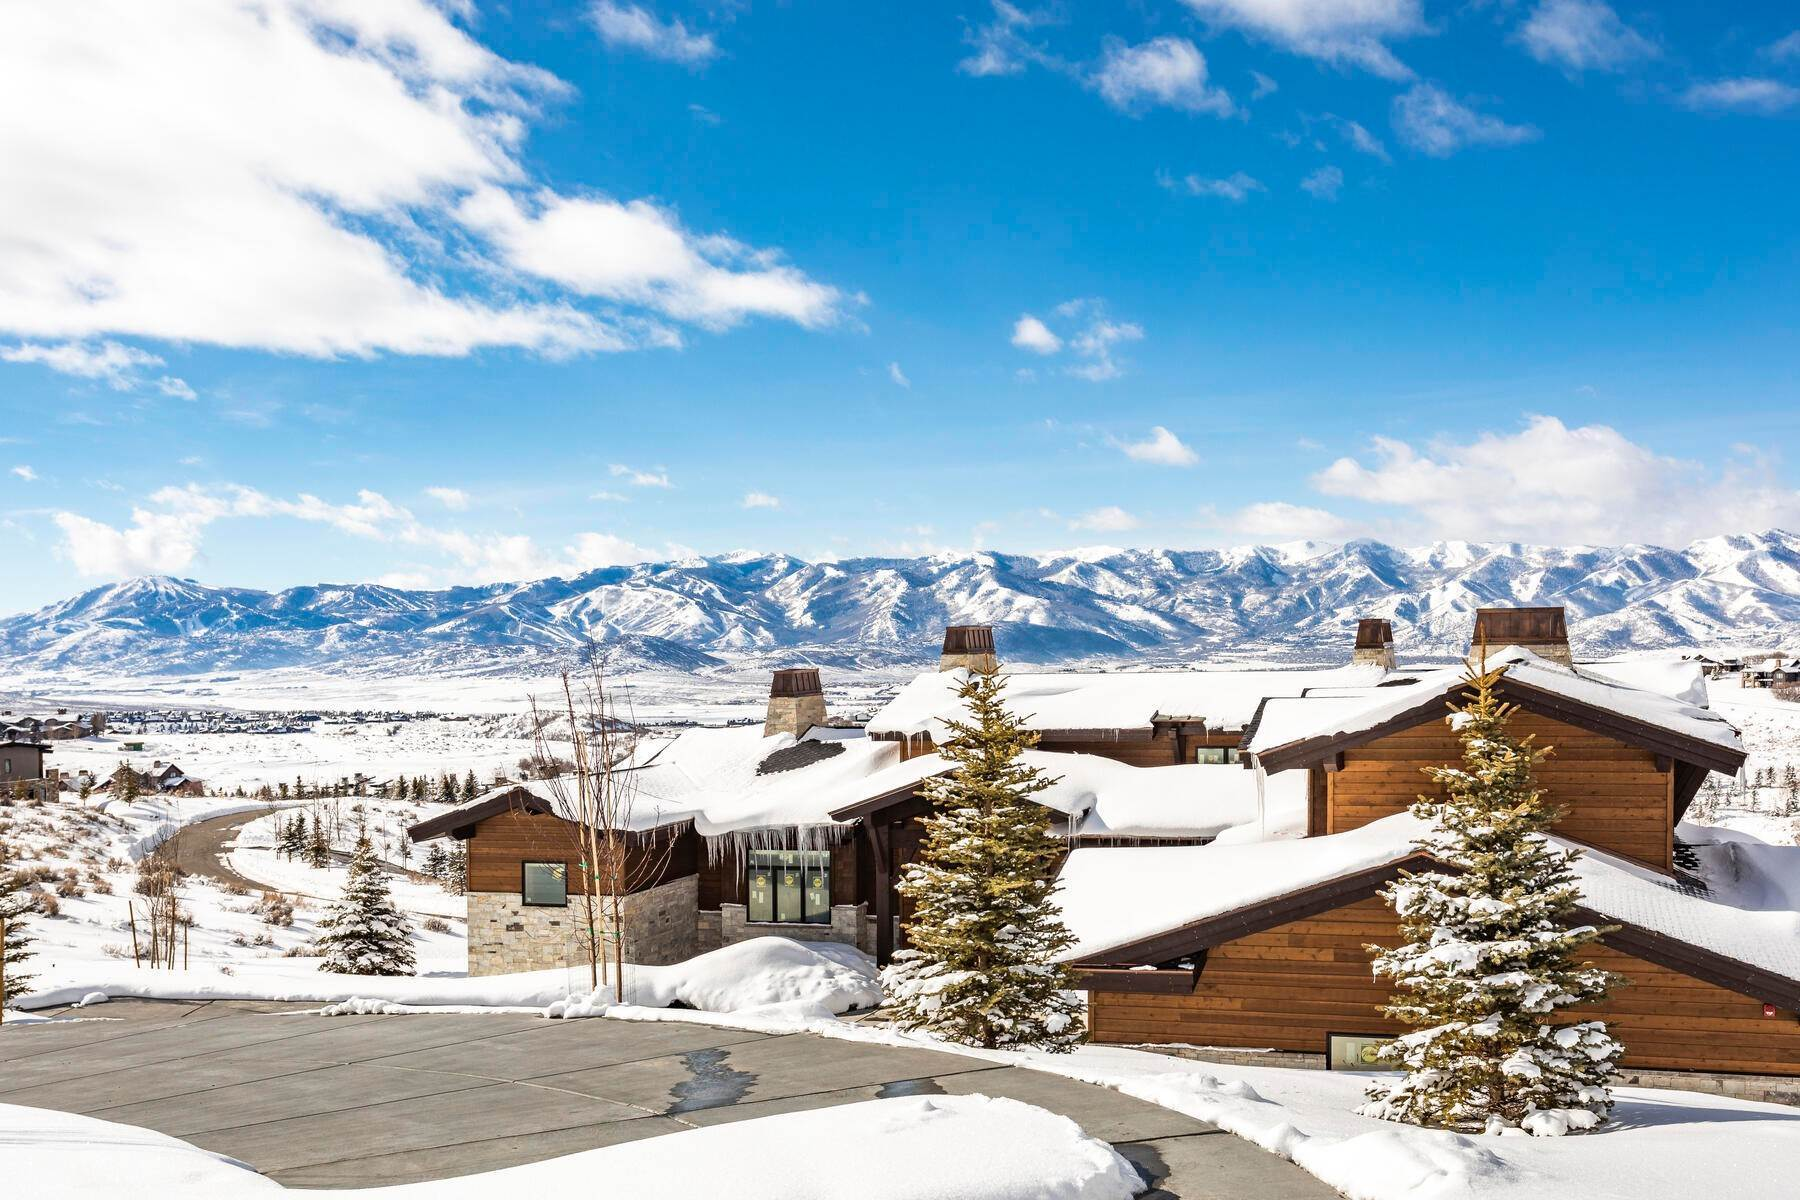 Property for Sale at Brand New Home With Huge Ski Resort Views 3388 Central Pacific Trail Park City, Utah 84098 United States